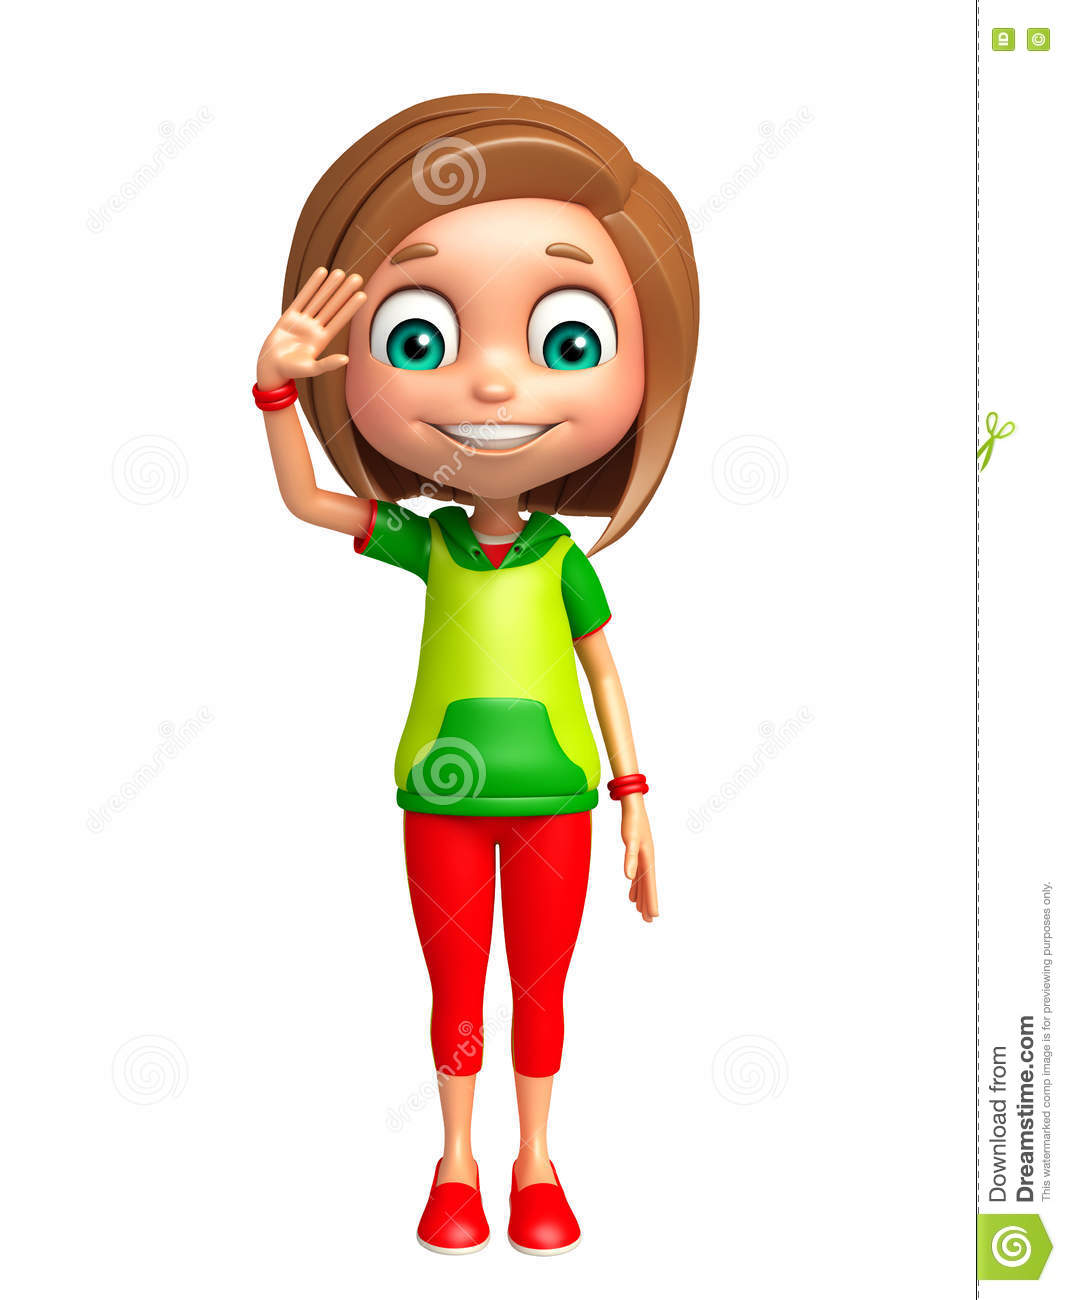 Kid Girl With Salute Pose Stock Illustration.